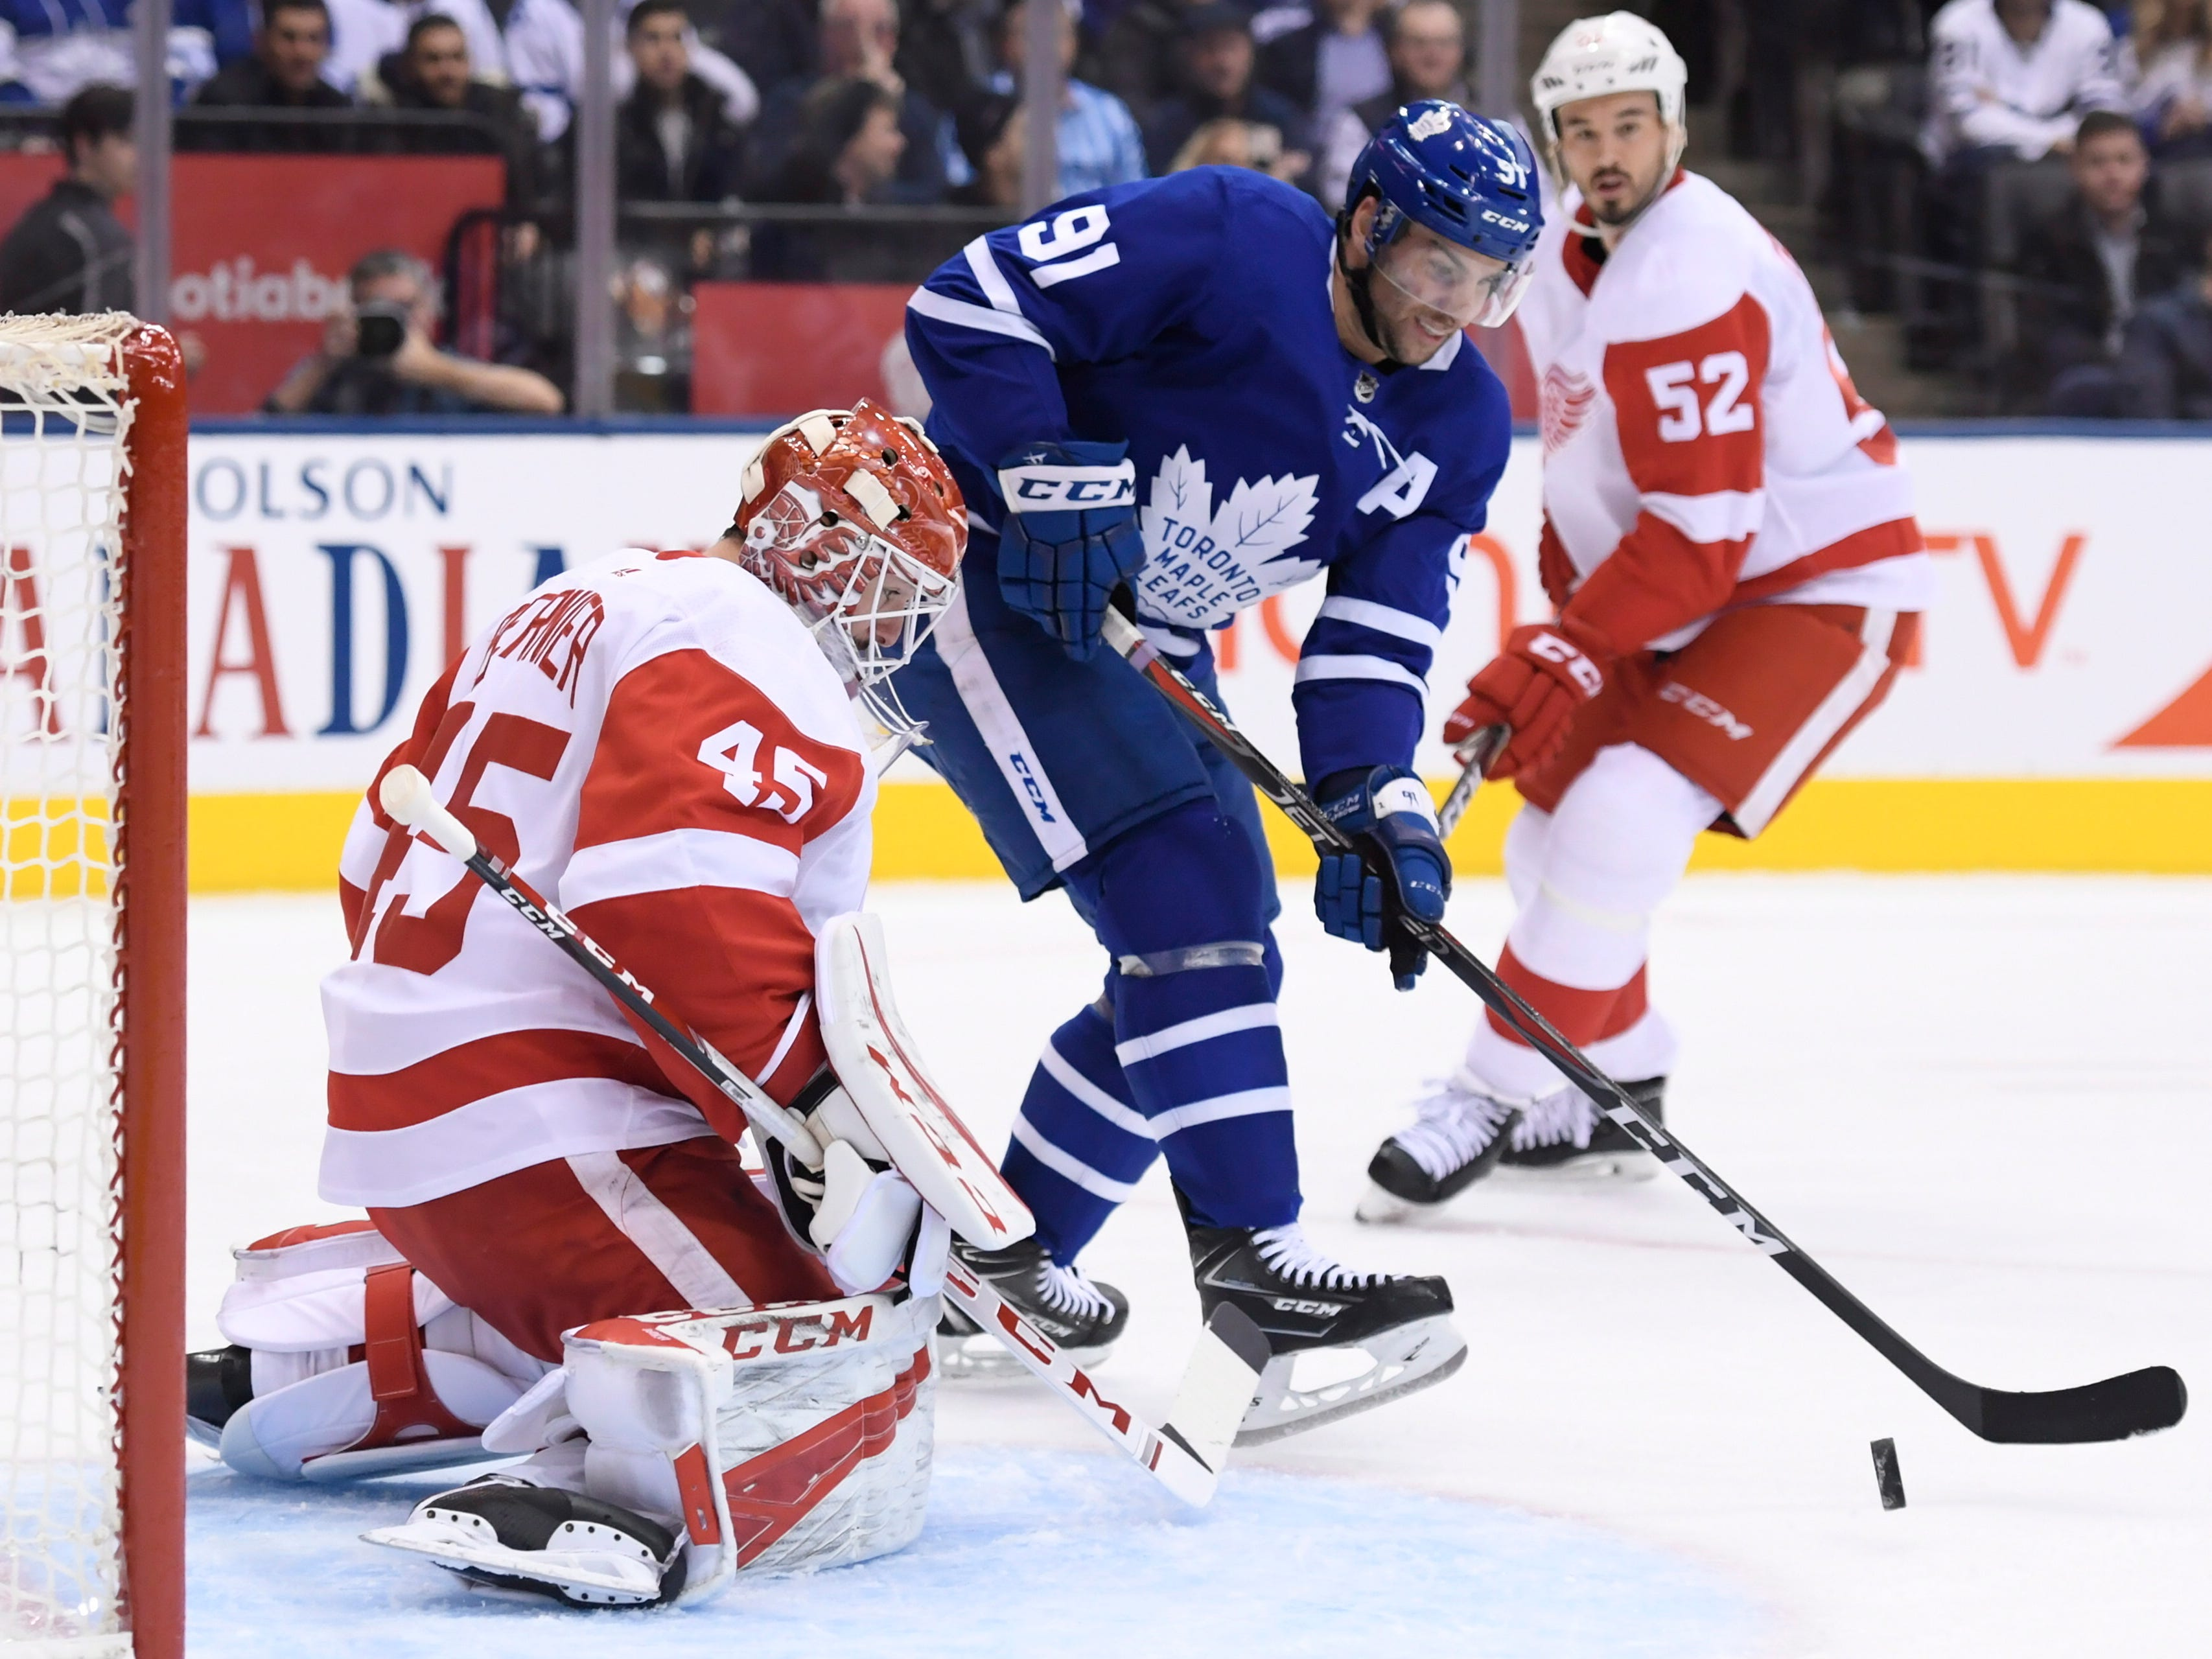 Maple Leafs center John Tavares is stopped by Red Wings goaltender Jonathan Bernier as defenseman Jonathan Ericsson moves in during the first period.